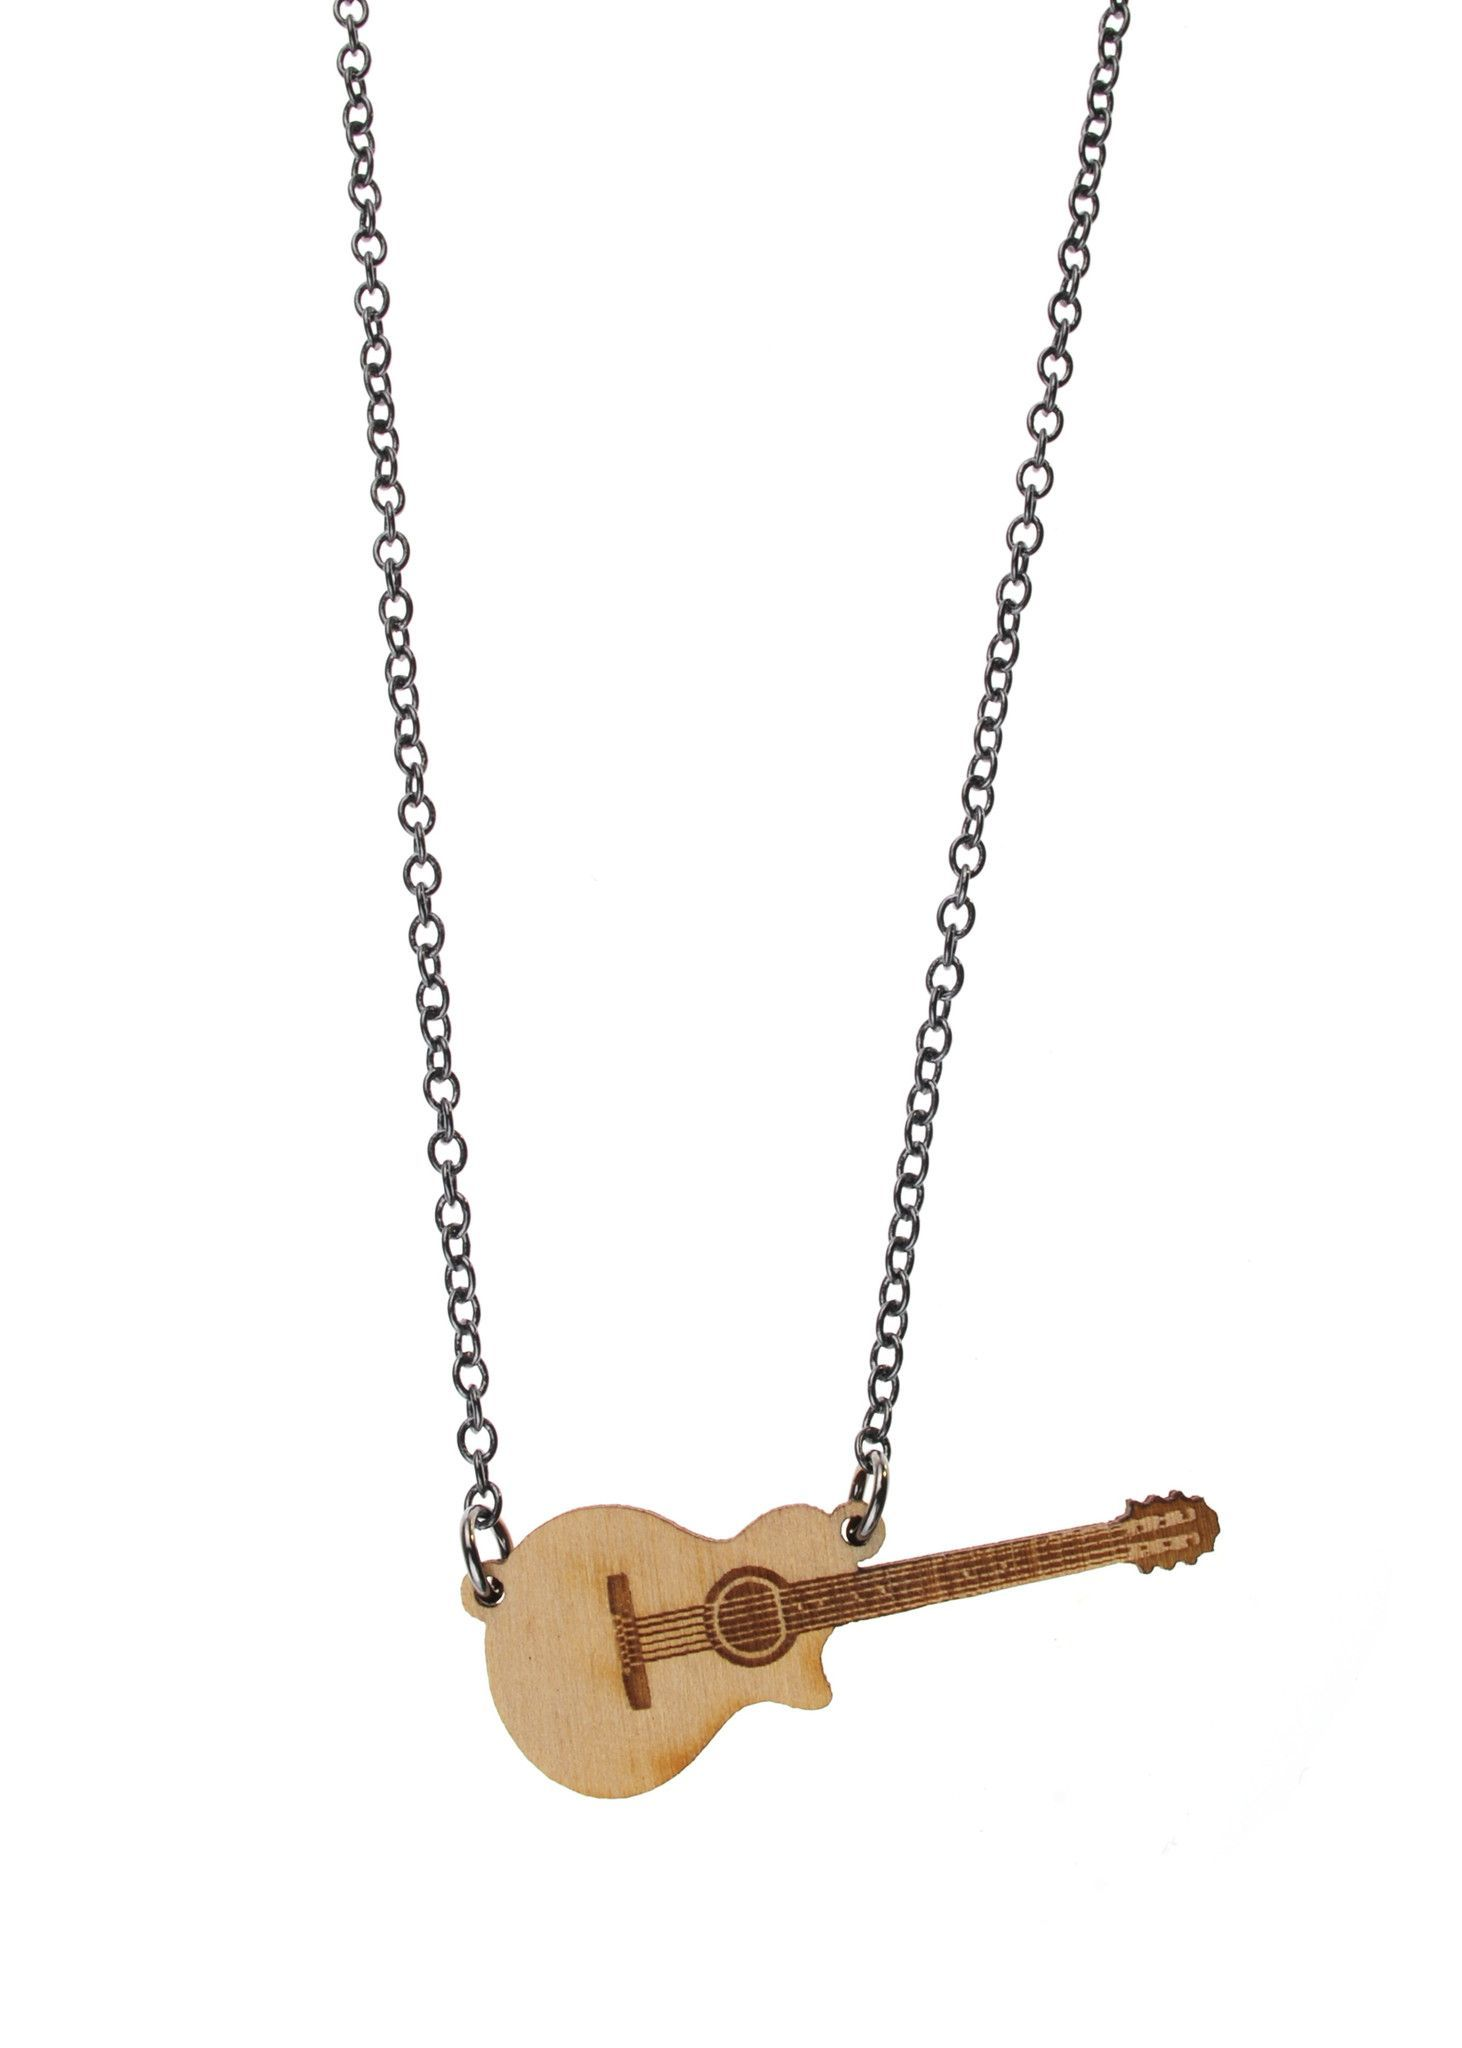 handmade guitar color coco necklace from rope cartoon shipping pendant silver drop jewelry in chain necklaces movie pixar item anime